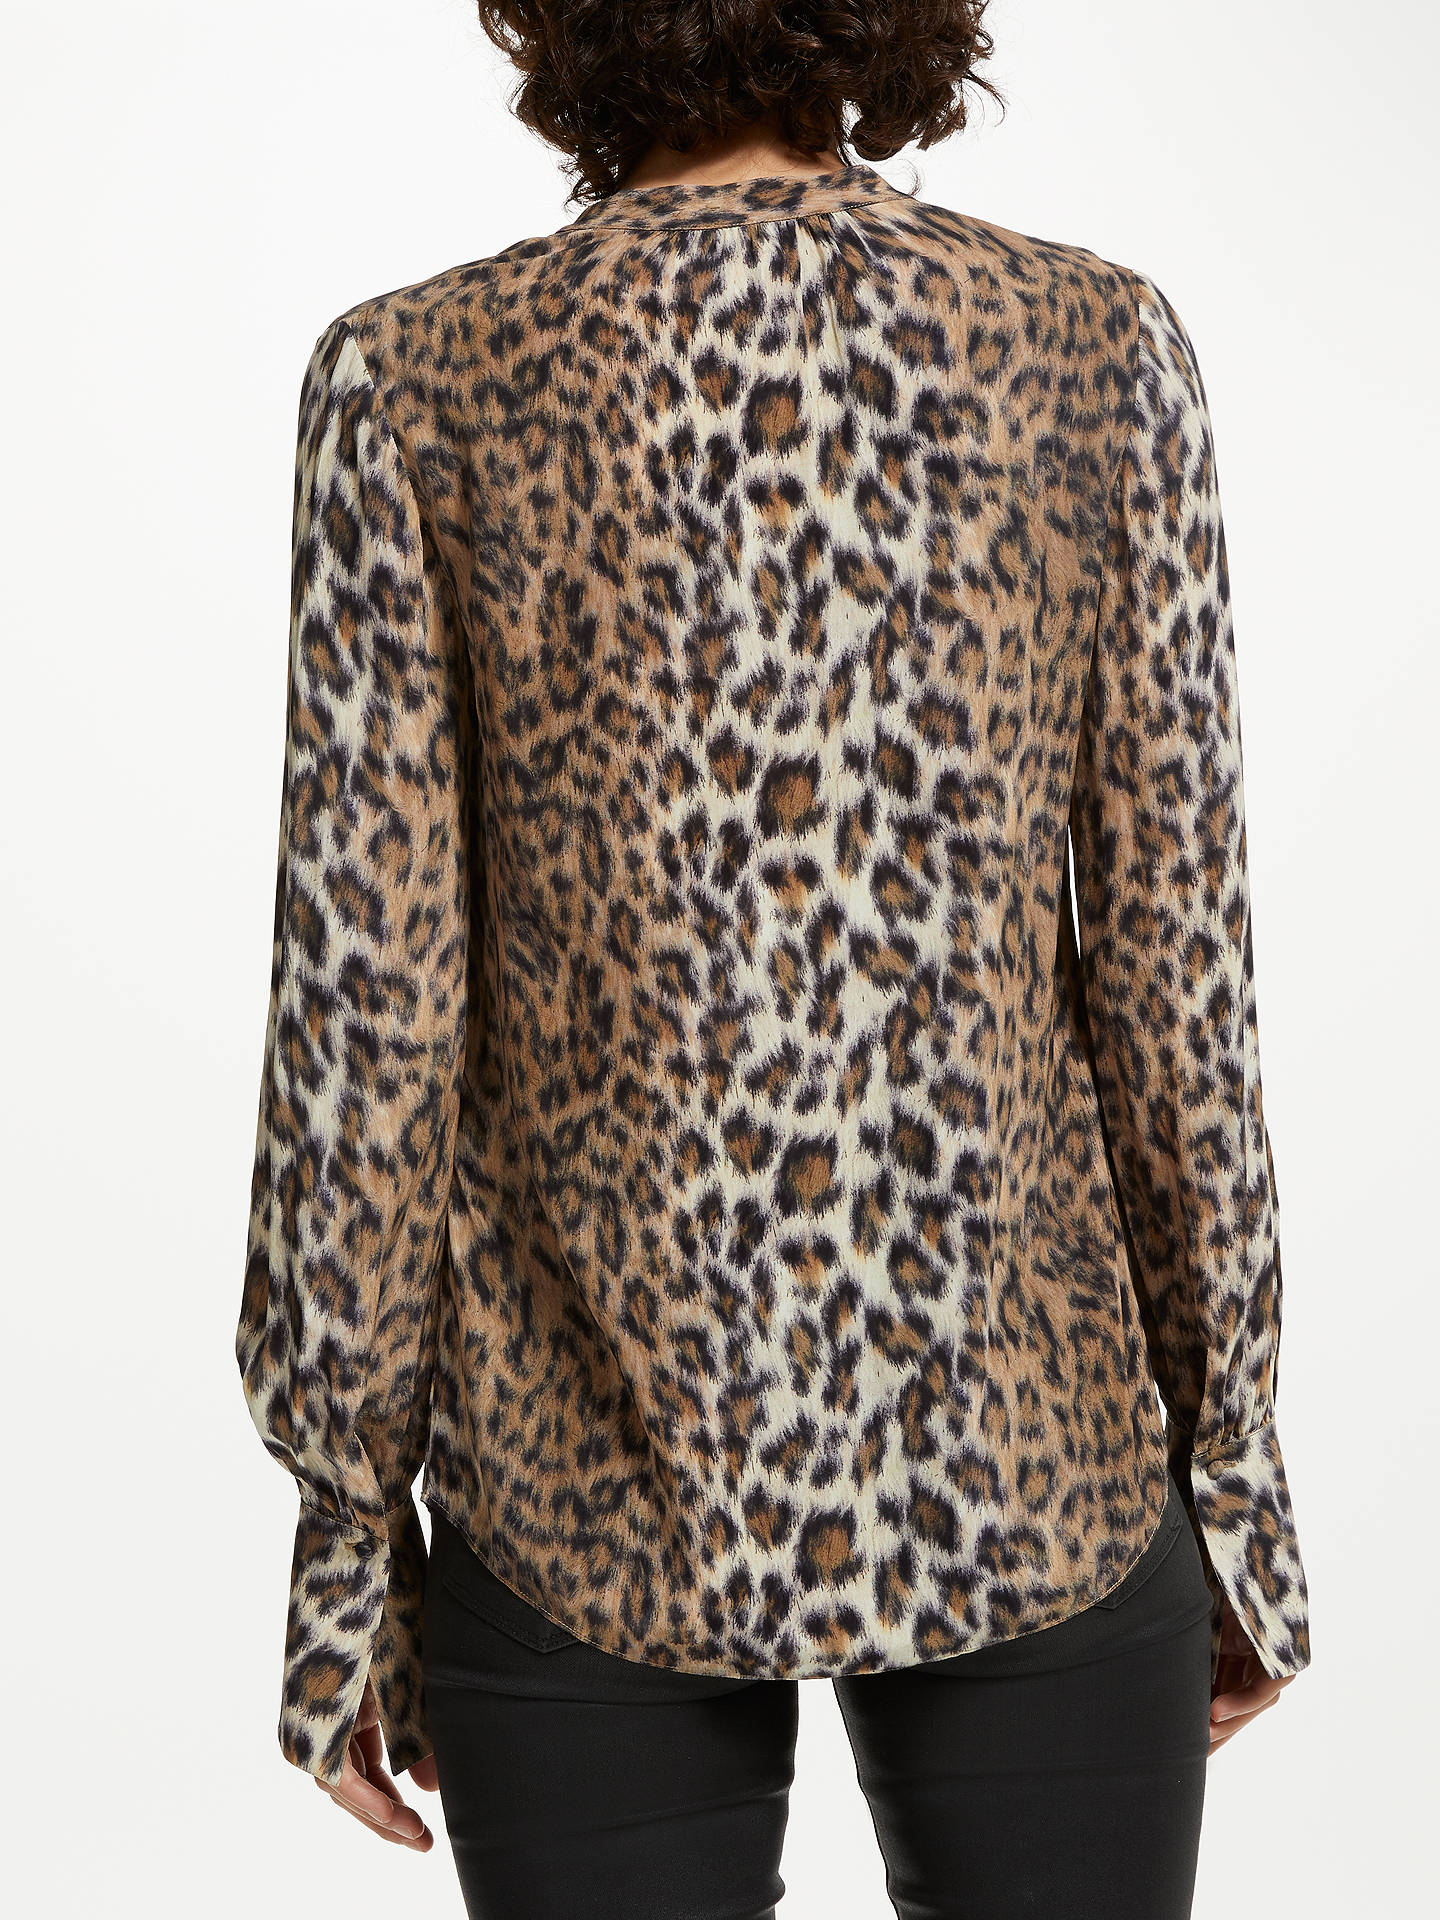 70158fb185e9a2 ... Buy Joie Tariana Animal Print Blouse, Brown, S Online at johnlewis.com  ...